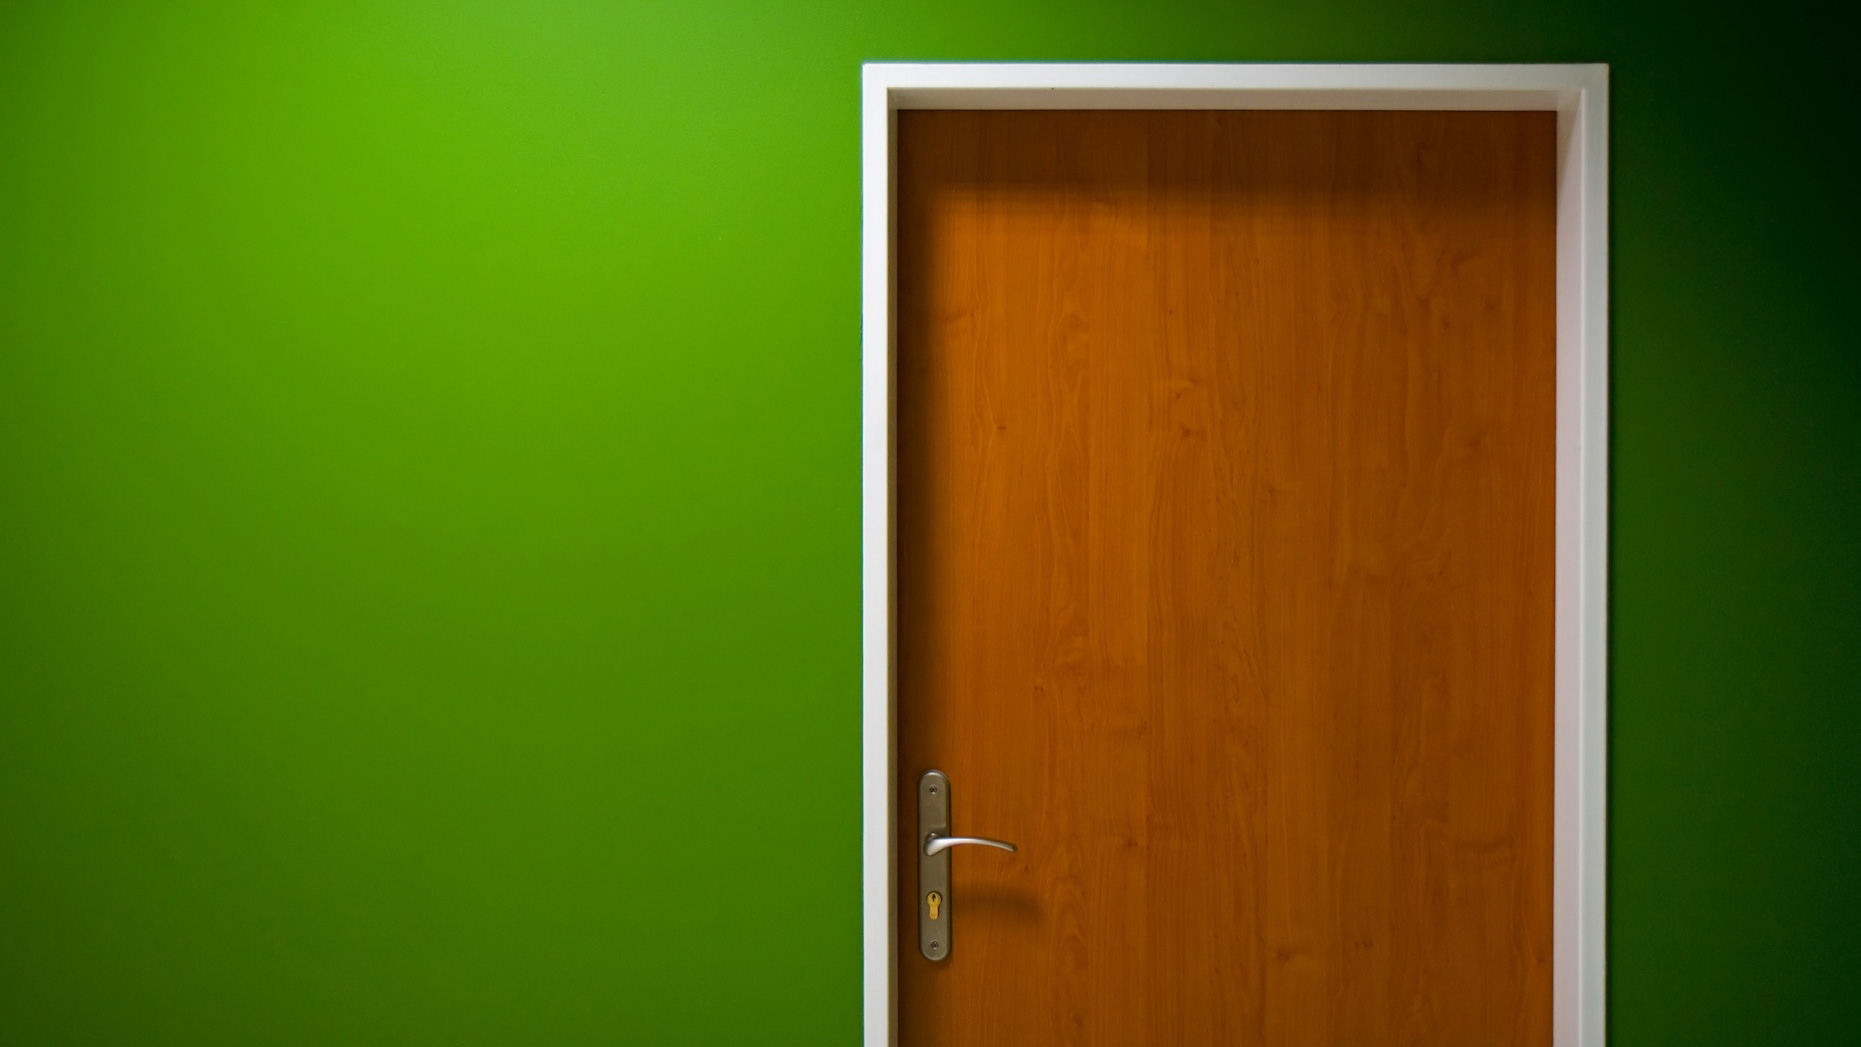 Green Door Google Cover & Abstract Google Covers - Google Plus Covers Photos